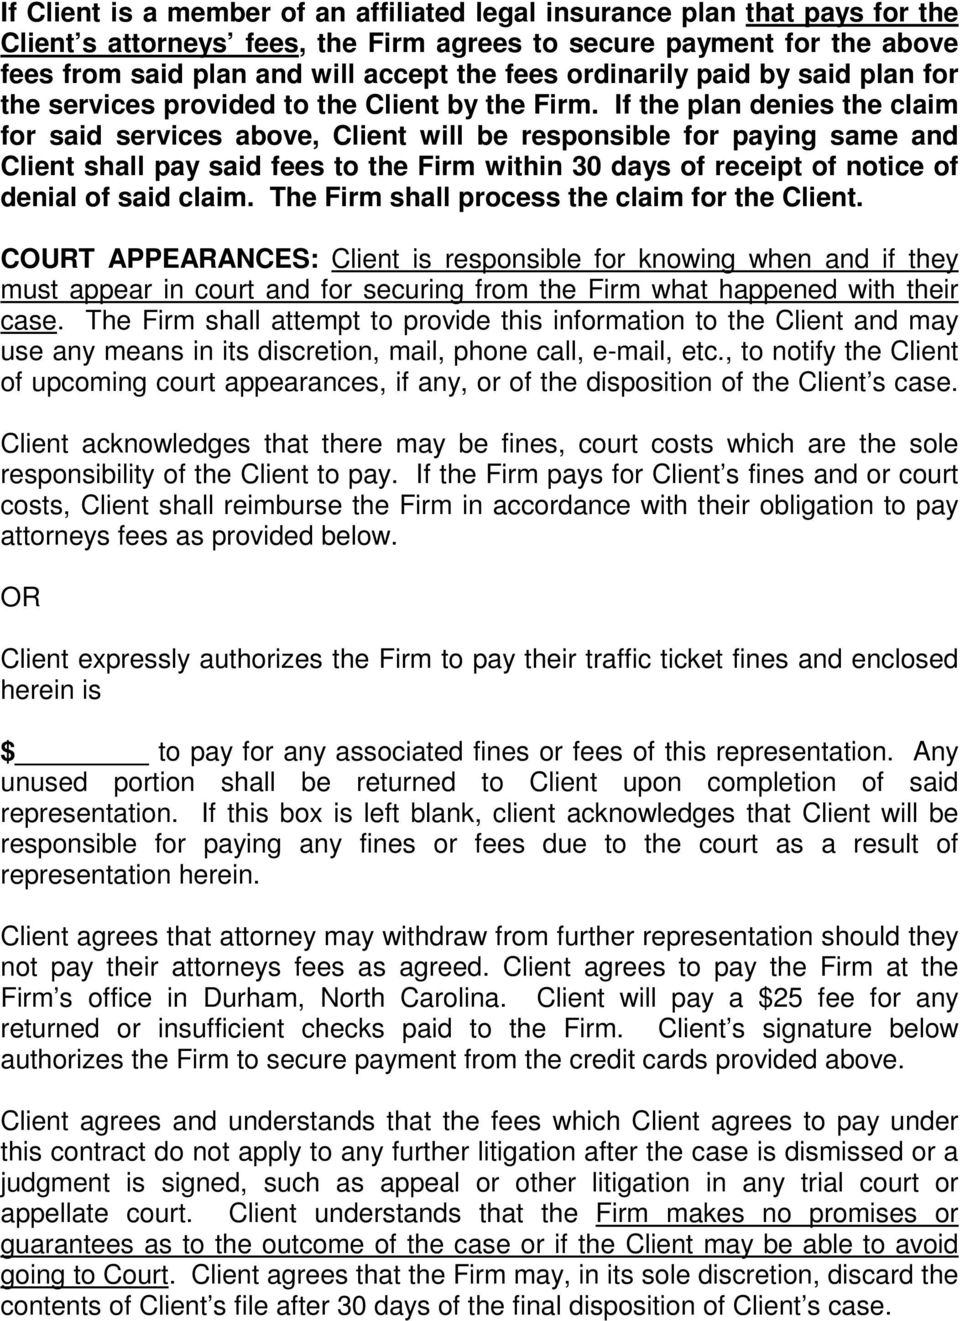 If the plan denies the claim for said services above, Client will be responsible for paying same and Client shall pay said fees to the Firm within 30 days of receipt of notice of denial of said claim.